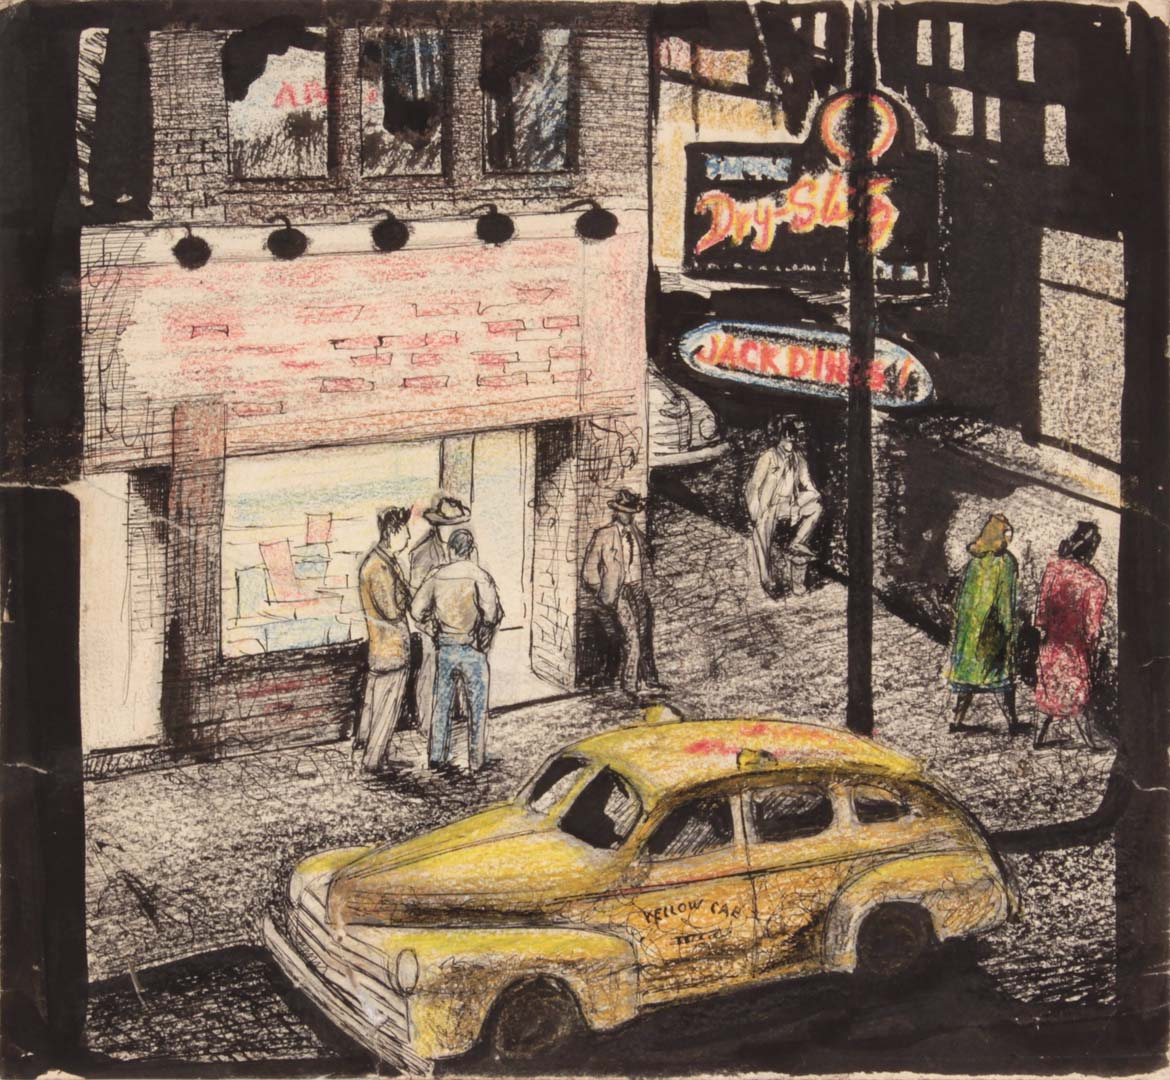 "1949 NT (Jack Diner) Mixed Media on Paper 8.875"" x 9.625"""